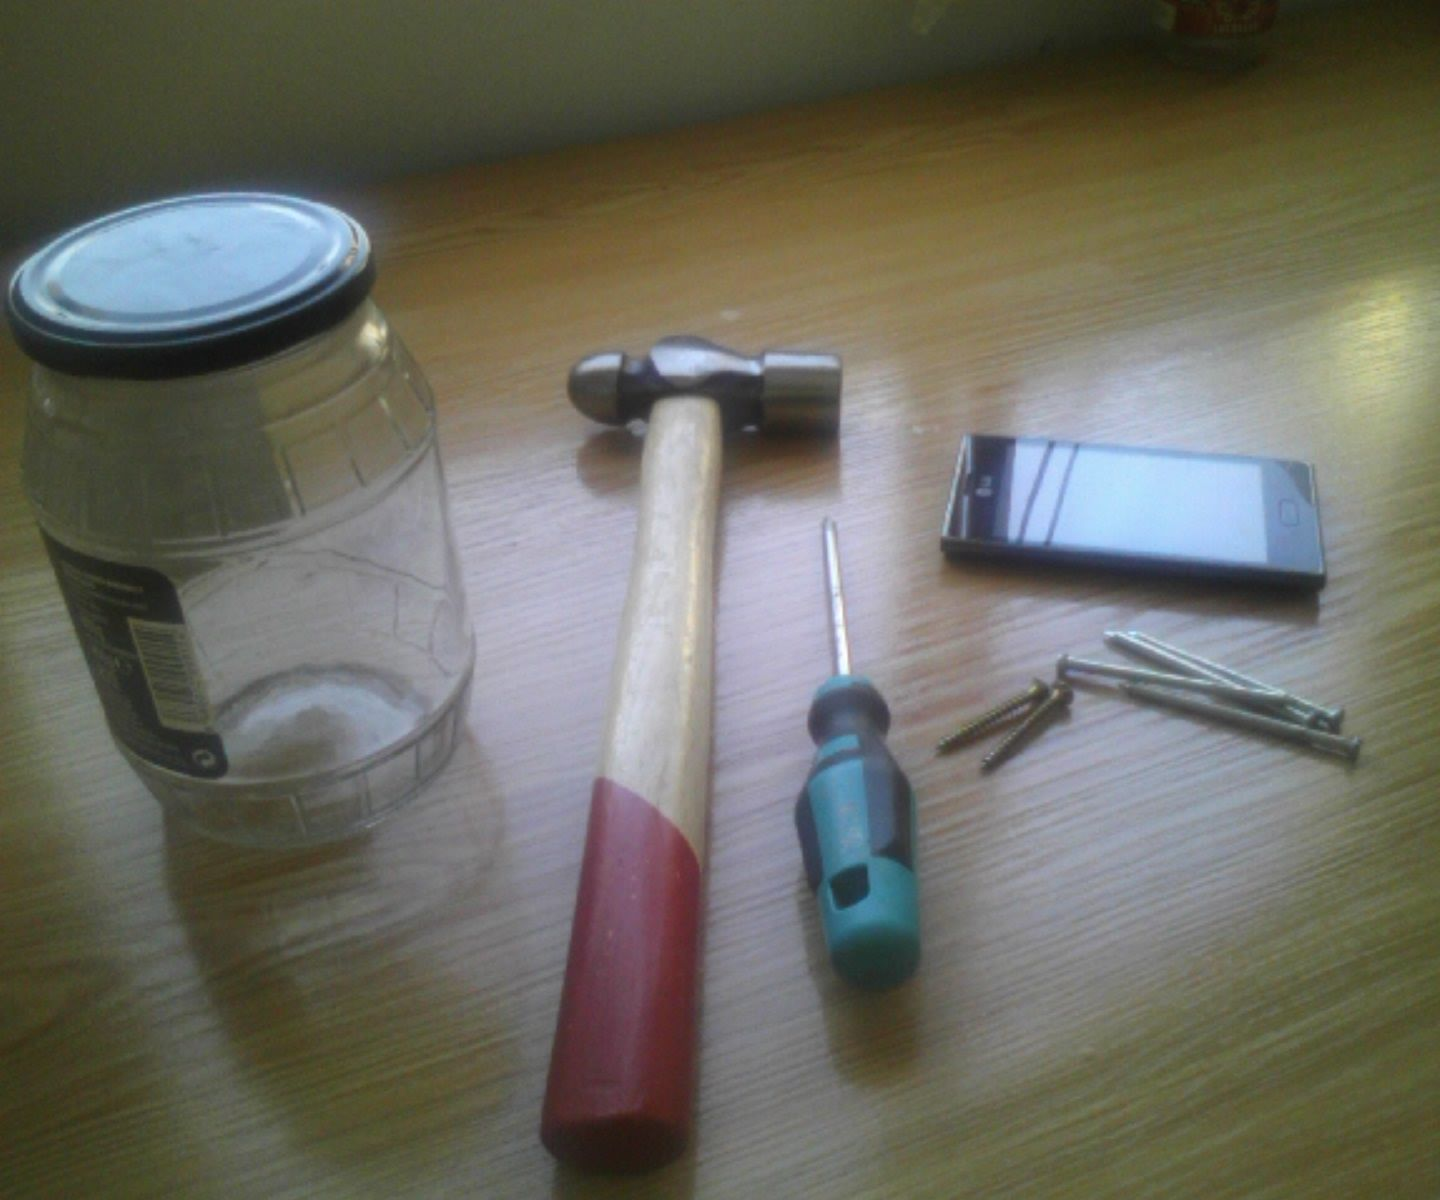 Easy support for your phone with a jar and some screws